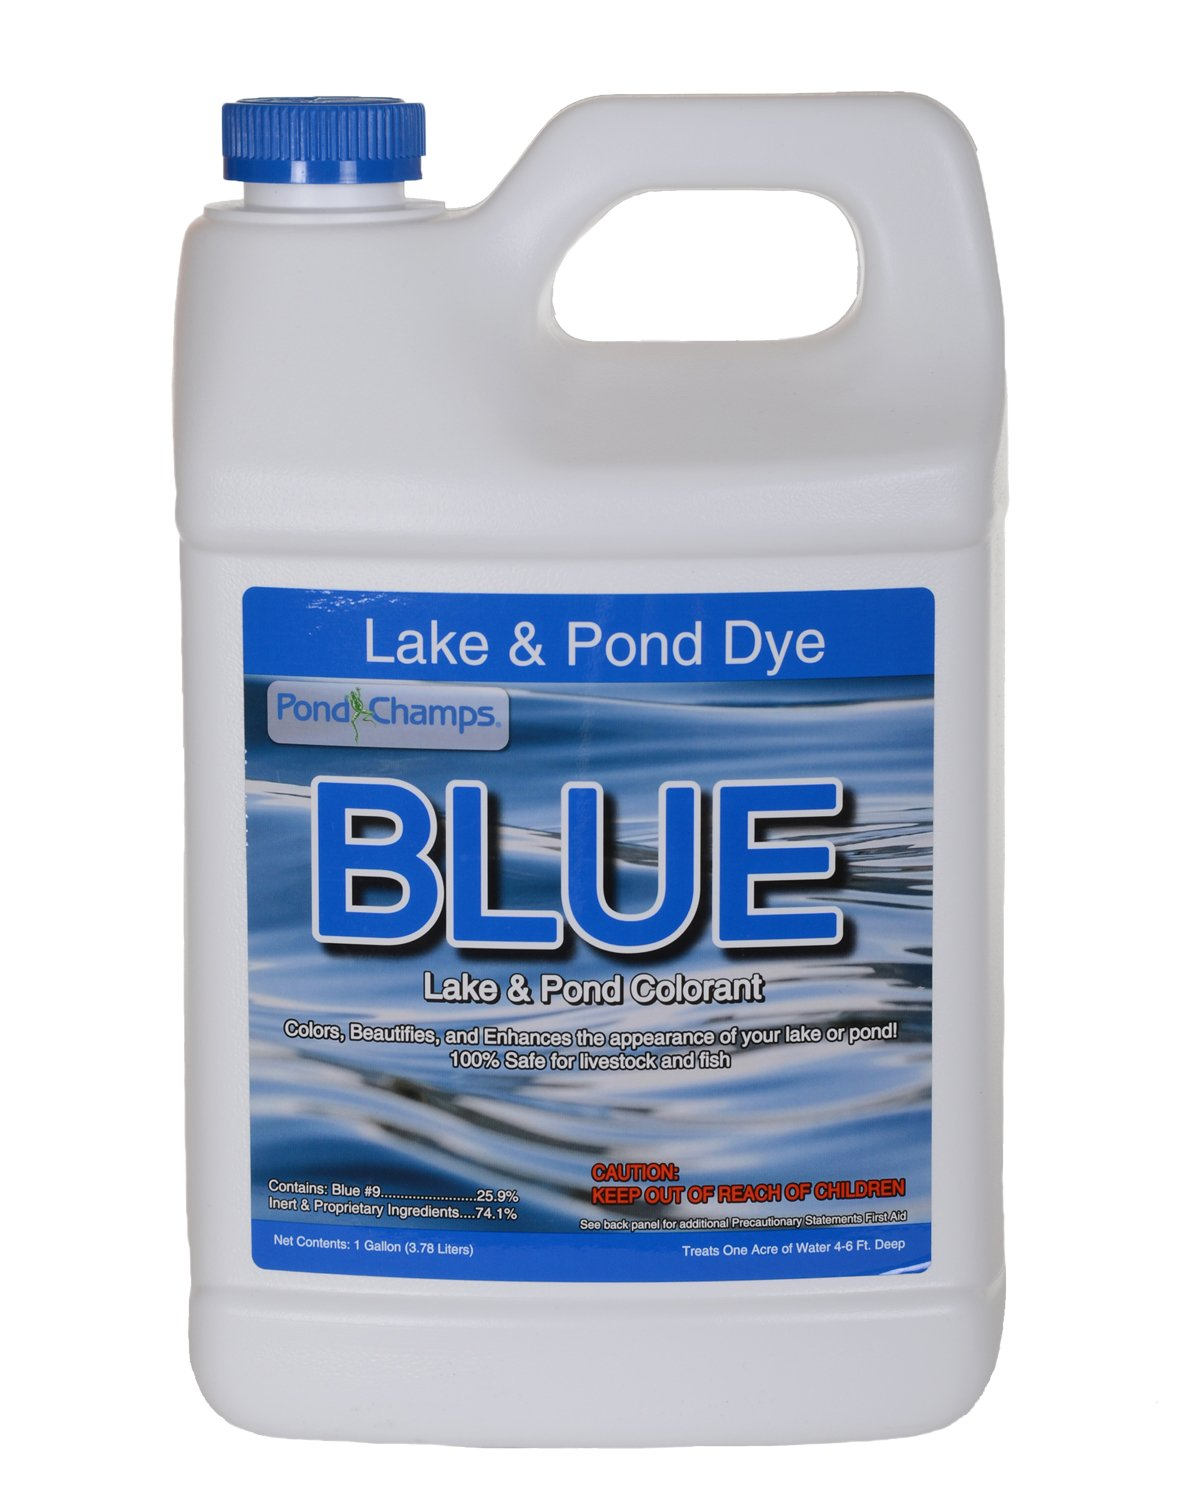 Blue Lake and Pond Dye - 1 Gallon by Pond Champs